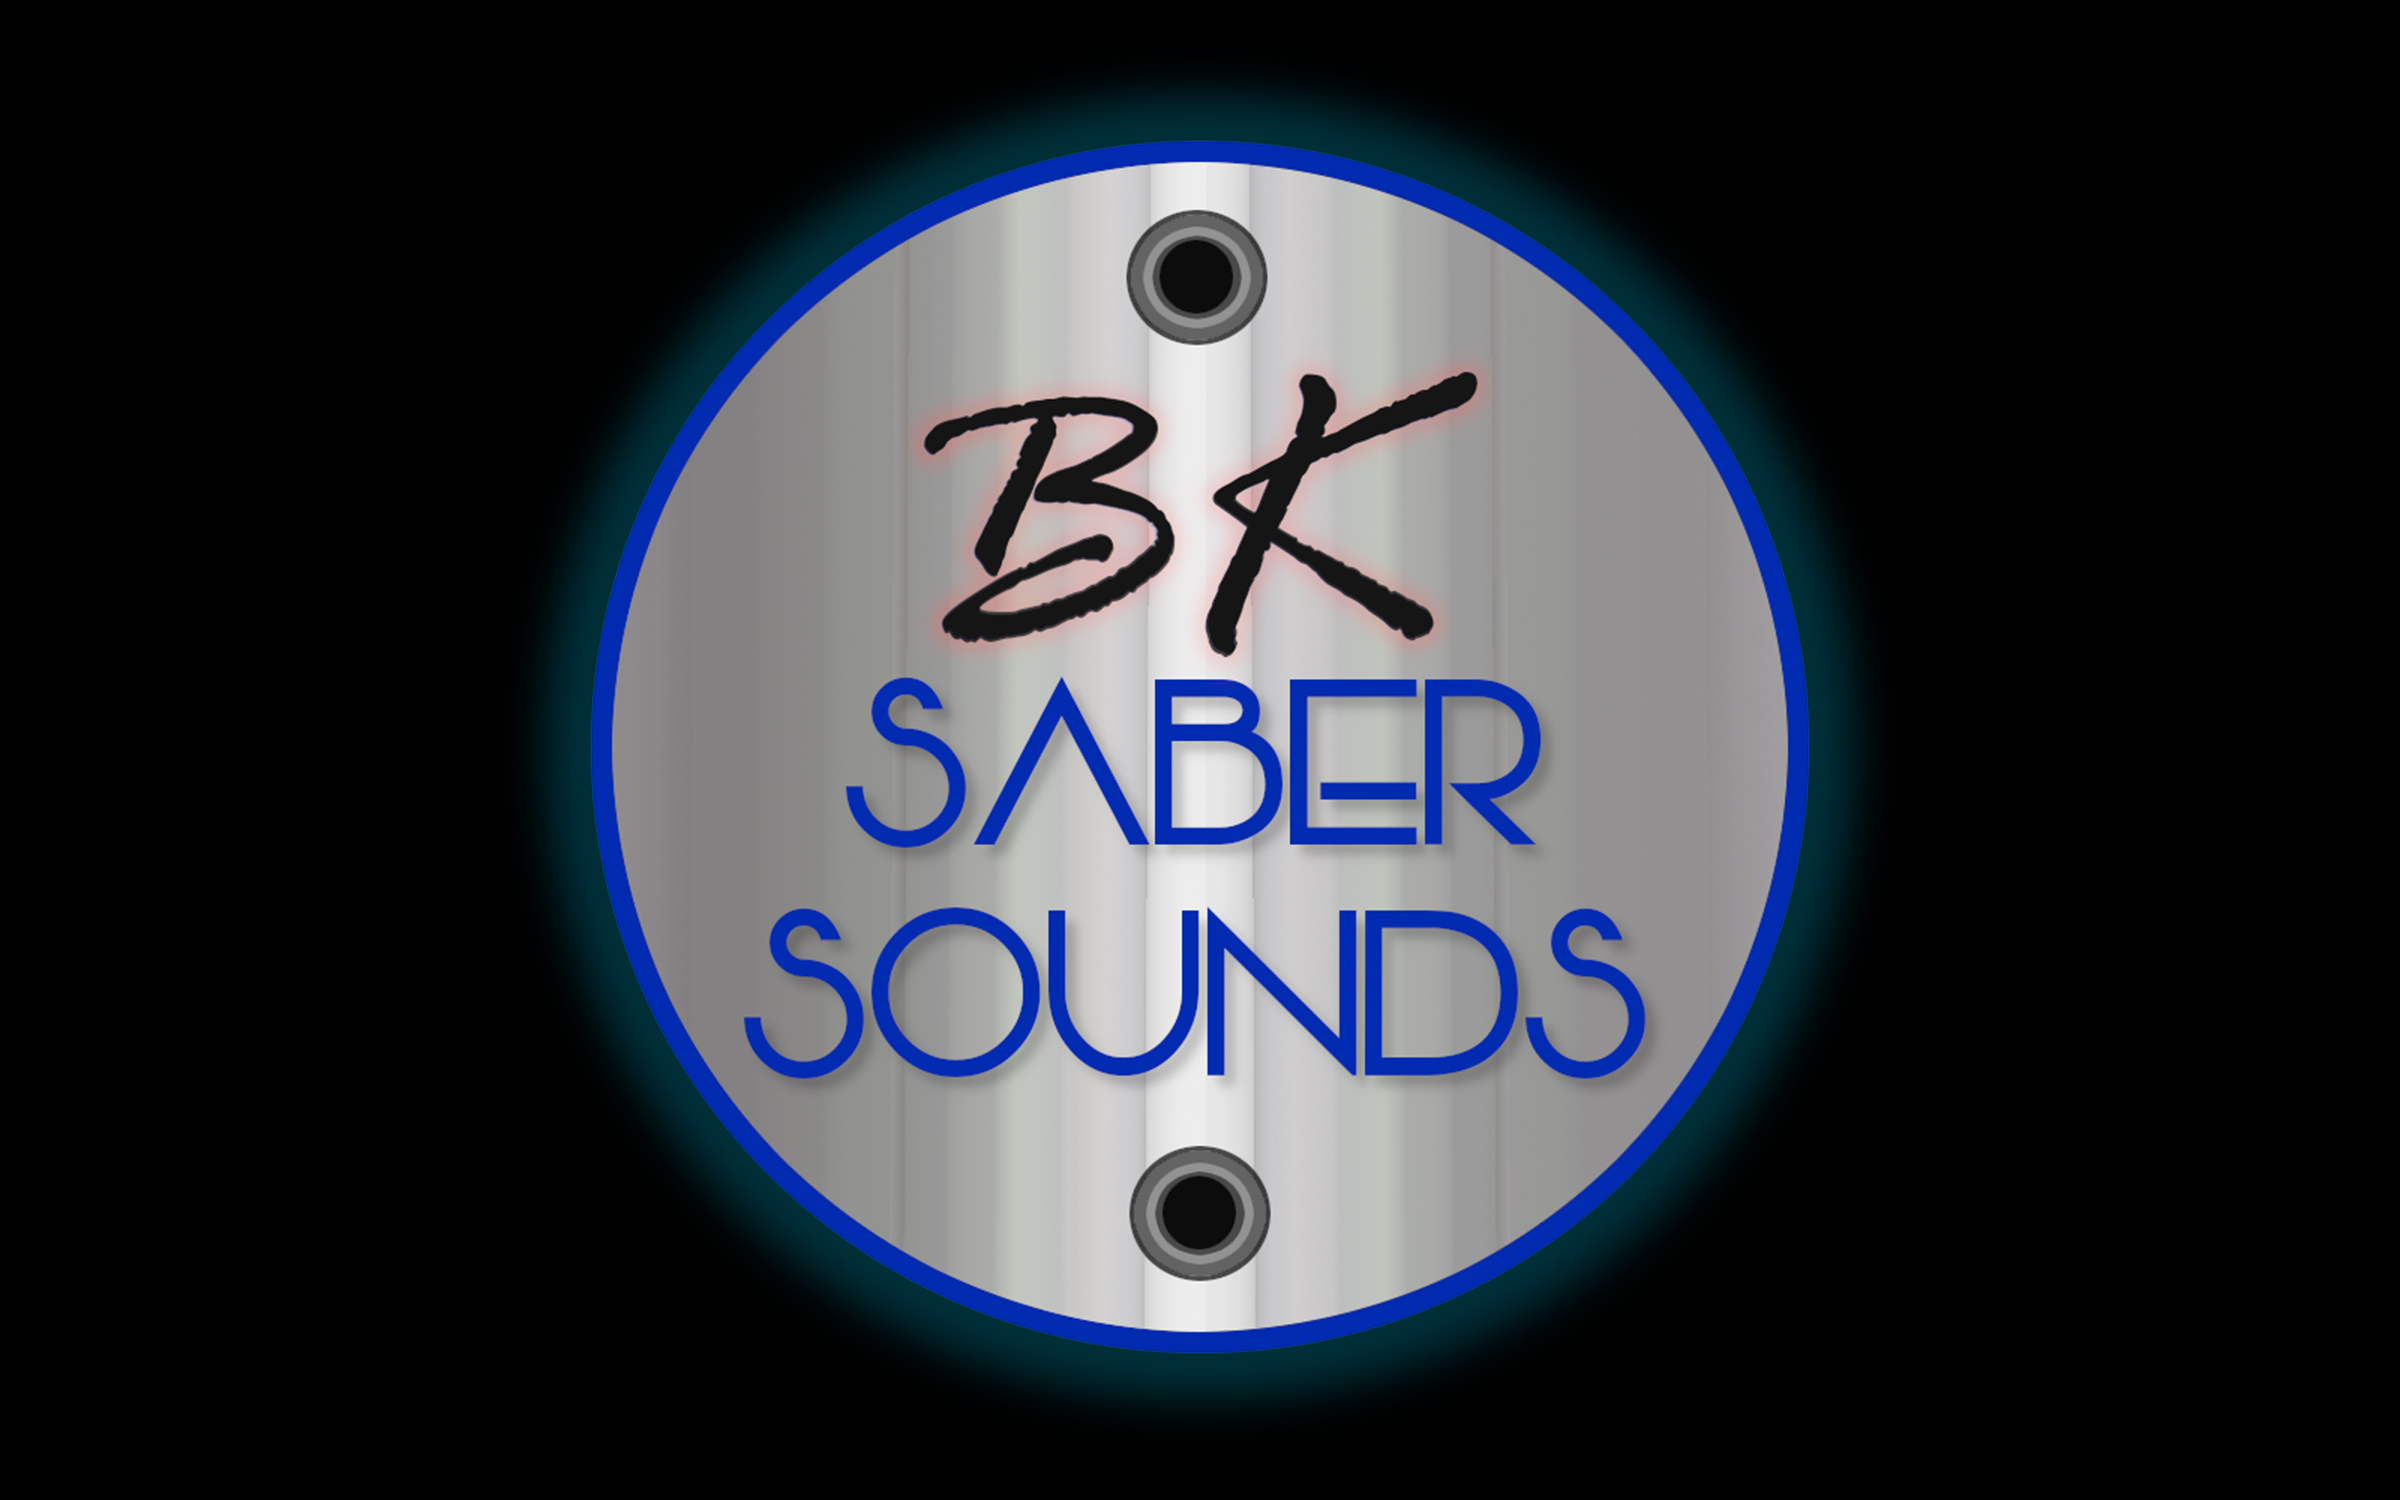 BK Saber Sounds